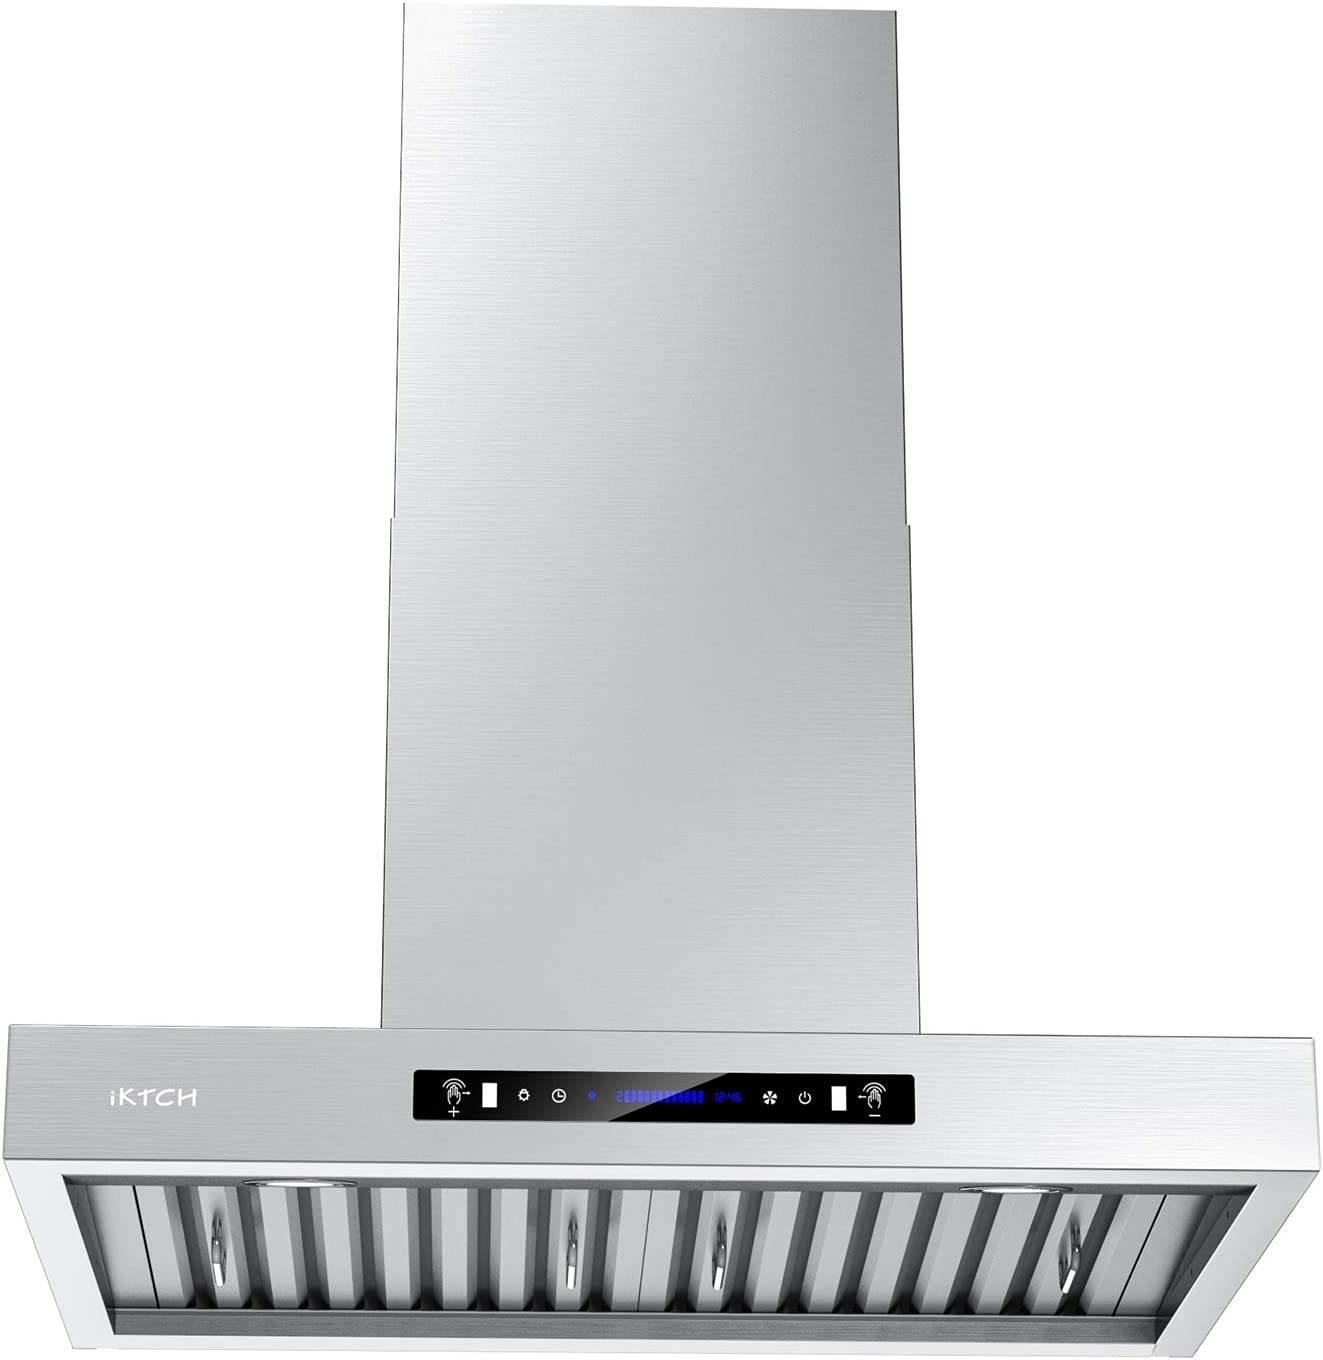 Iktch 36 Inches Wall Mount Range Hood 900 Cfm Stainless Steel Kitchen Chimney Vent With Gesture Sensing Touch Control Switch Panel 2 Pcs Adjustable Lights 3 Pcs Baffle Filter Ikp01 36 Appliances